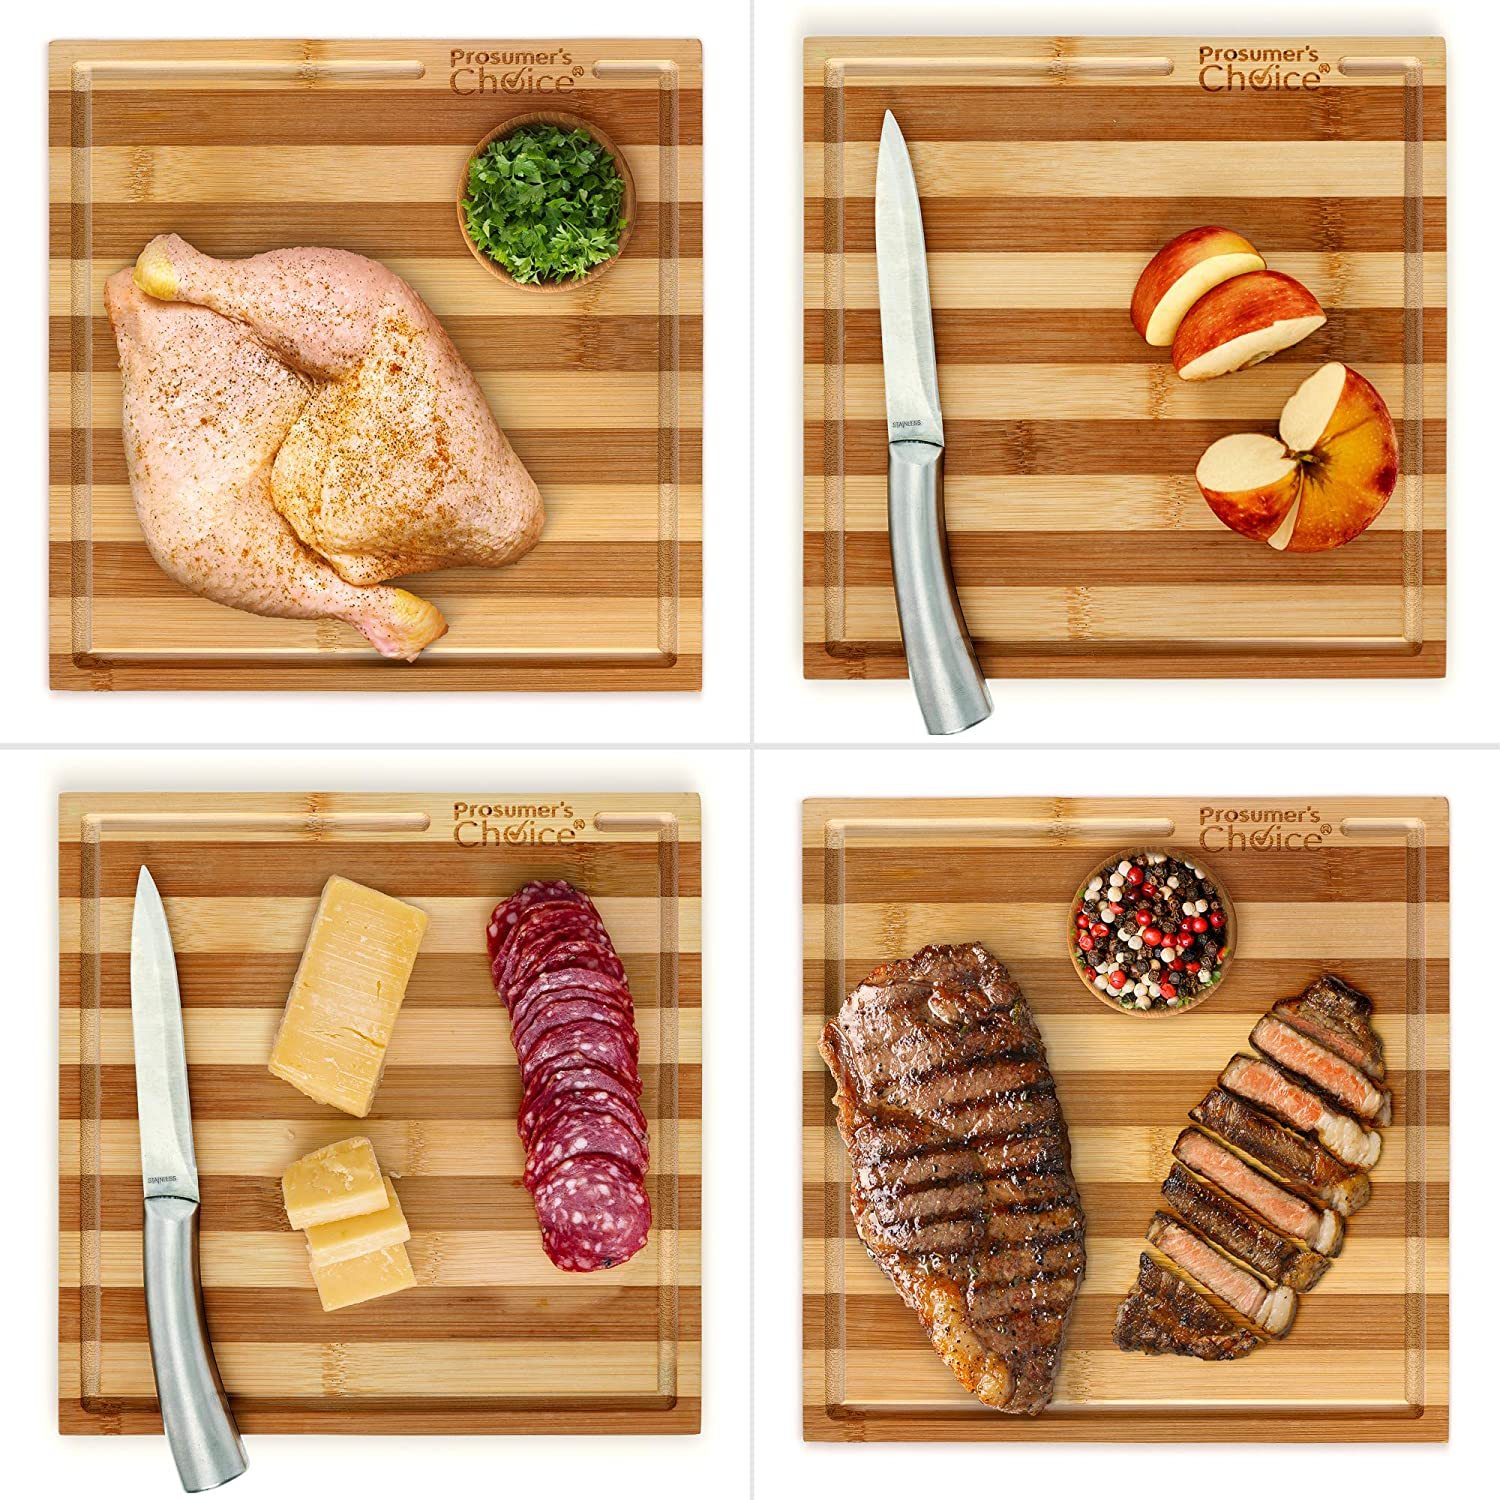 Prosumers Choice Bamboo Cutting Board and Single Burner Stovetop Cover Cheese Platter Aleratec